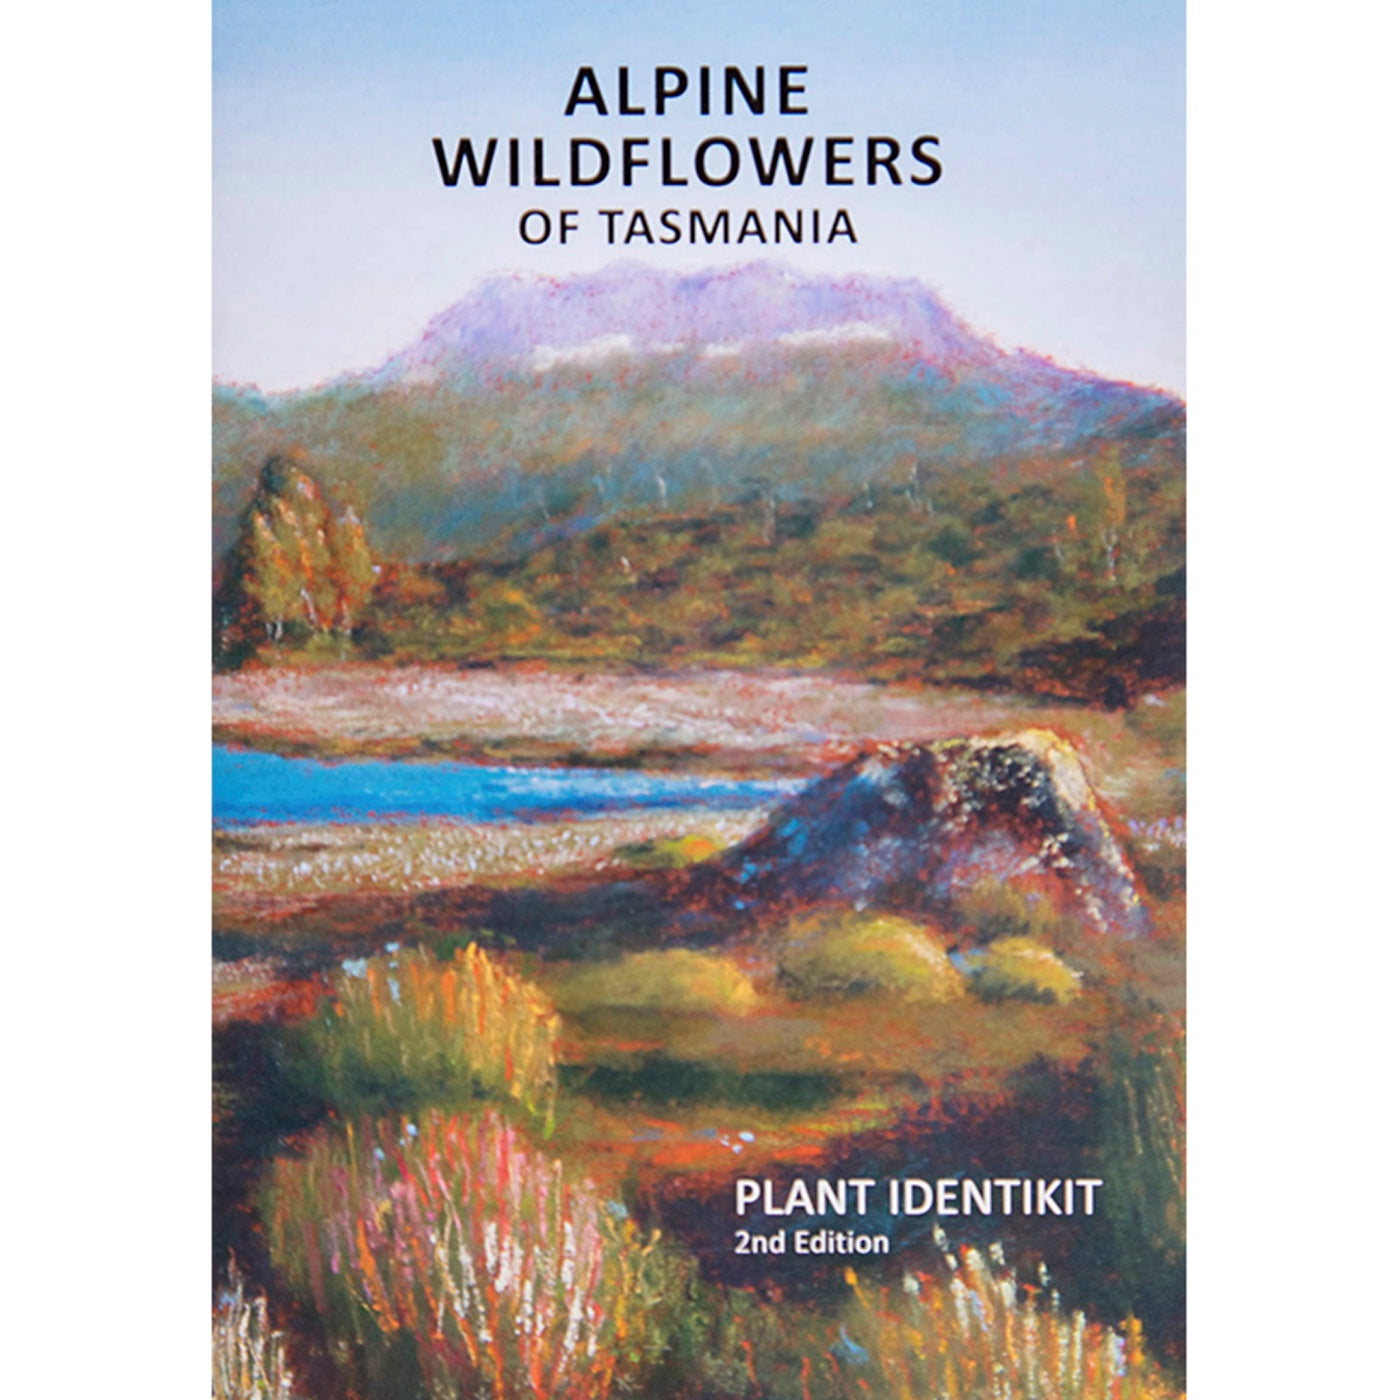 Plant Identikit - Alpine Wildflowers of Tasmania